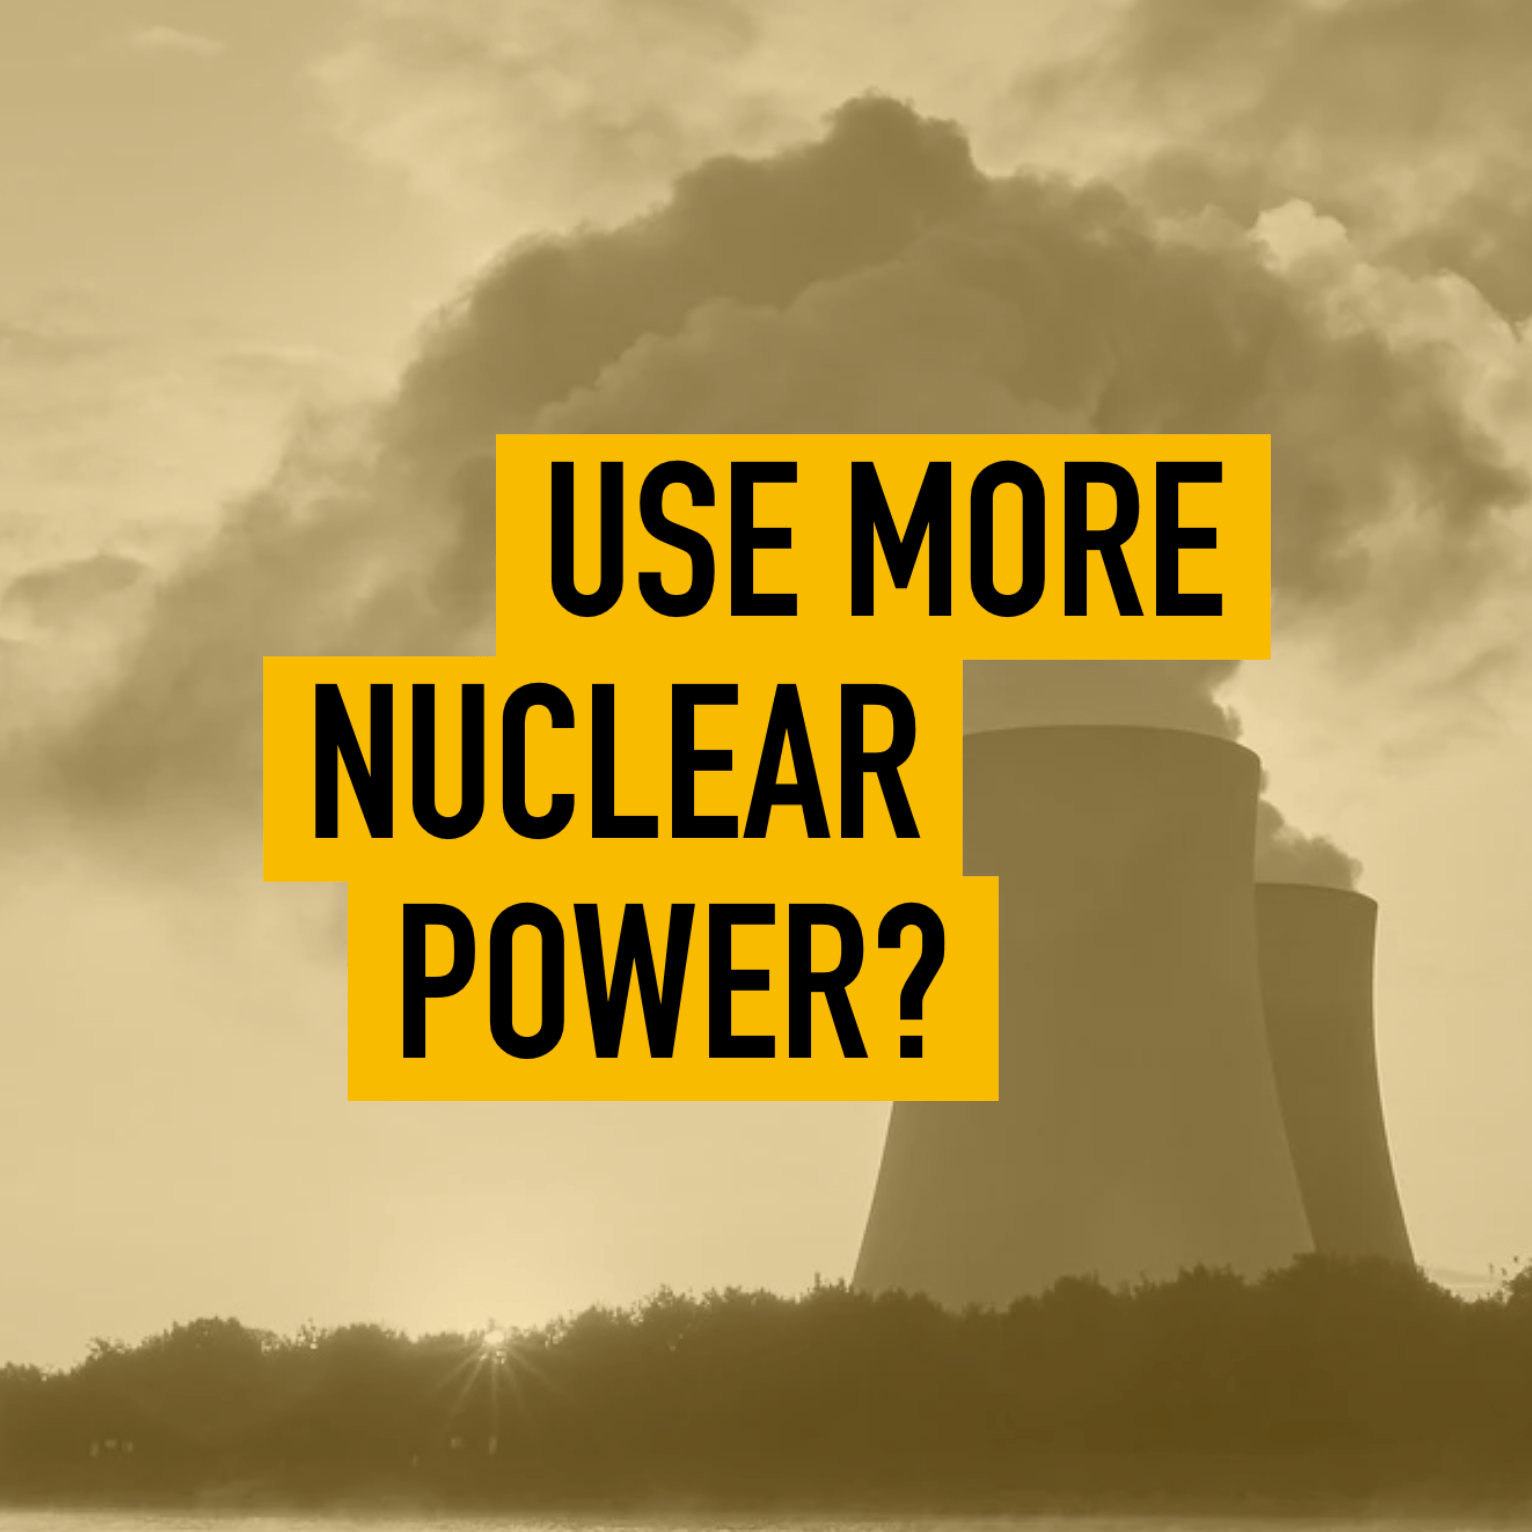 Nuclear Power: Should We Use More or Less?